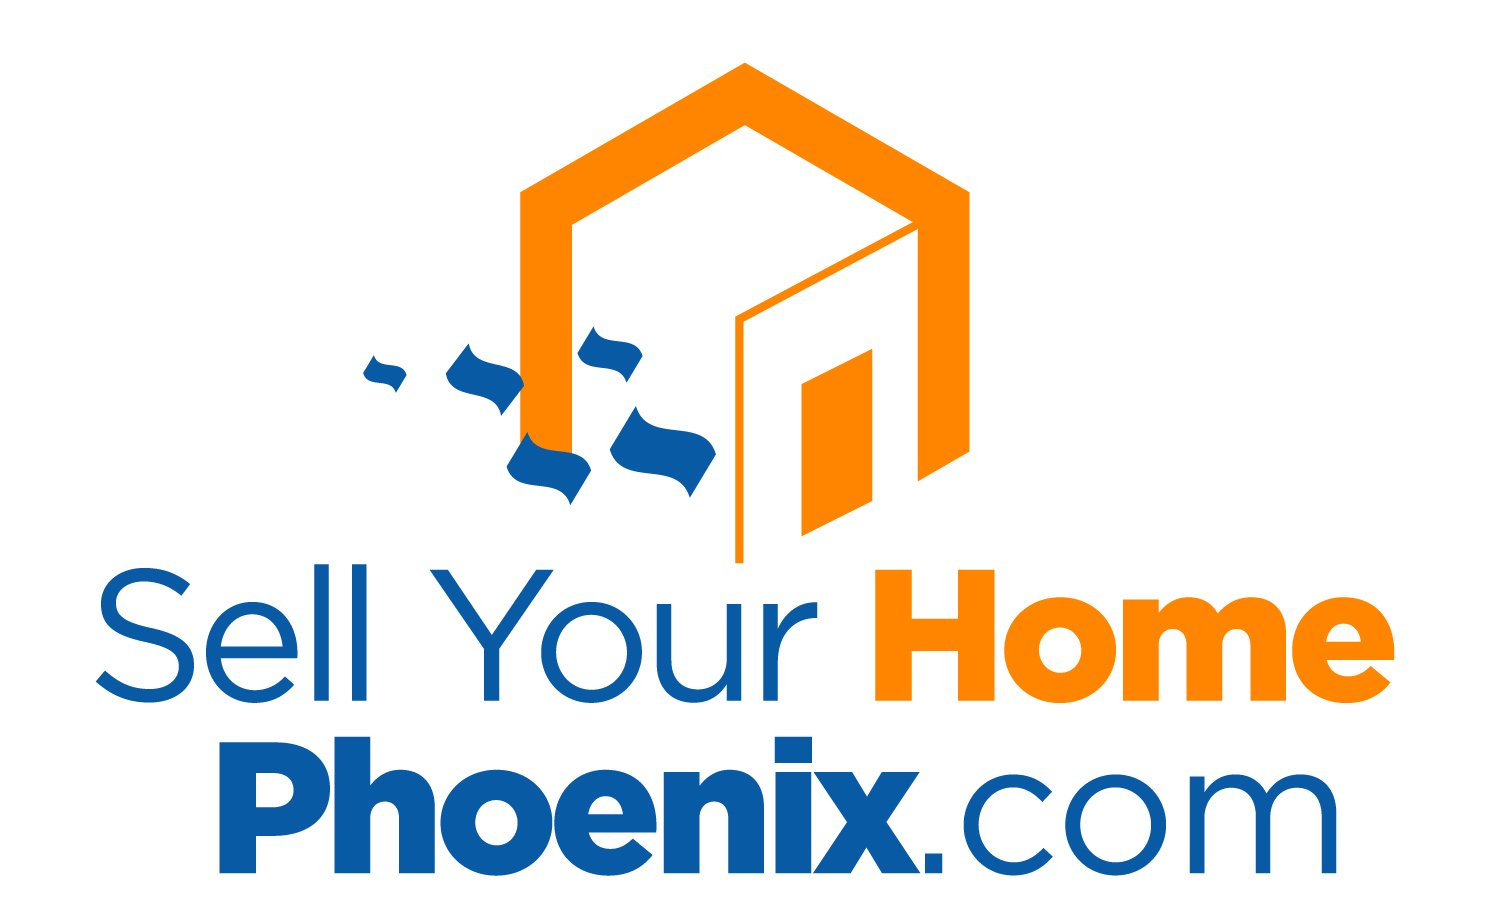 Sell Your Home Phoenix logo